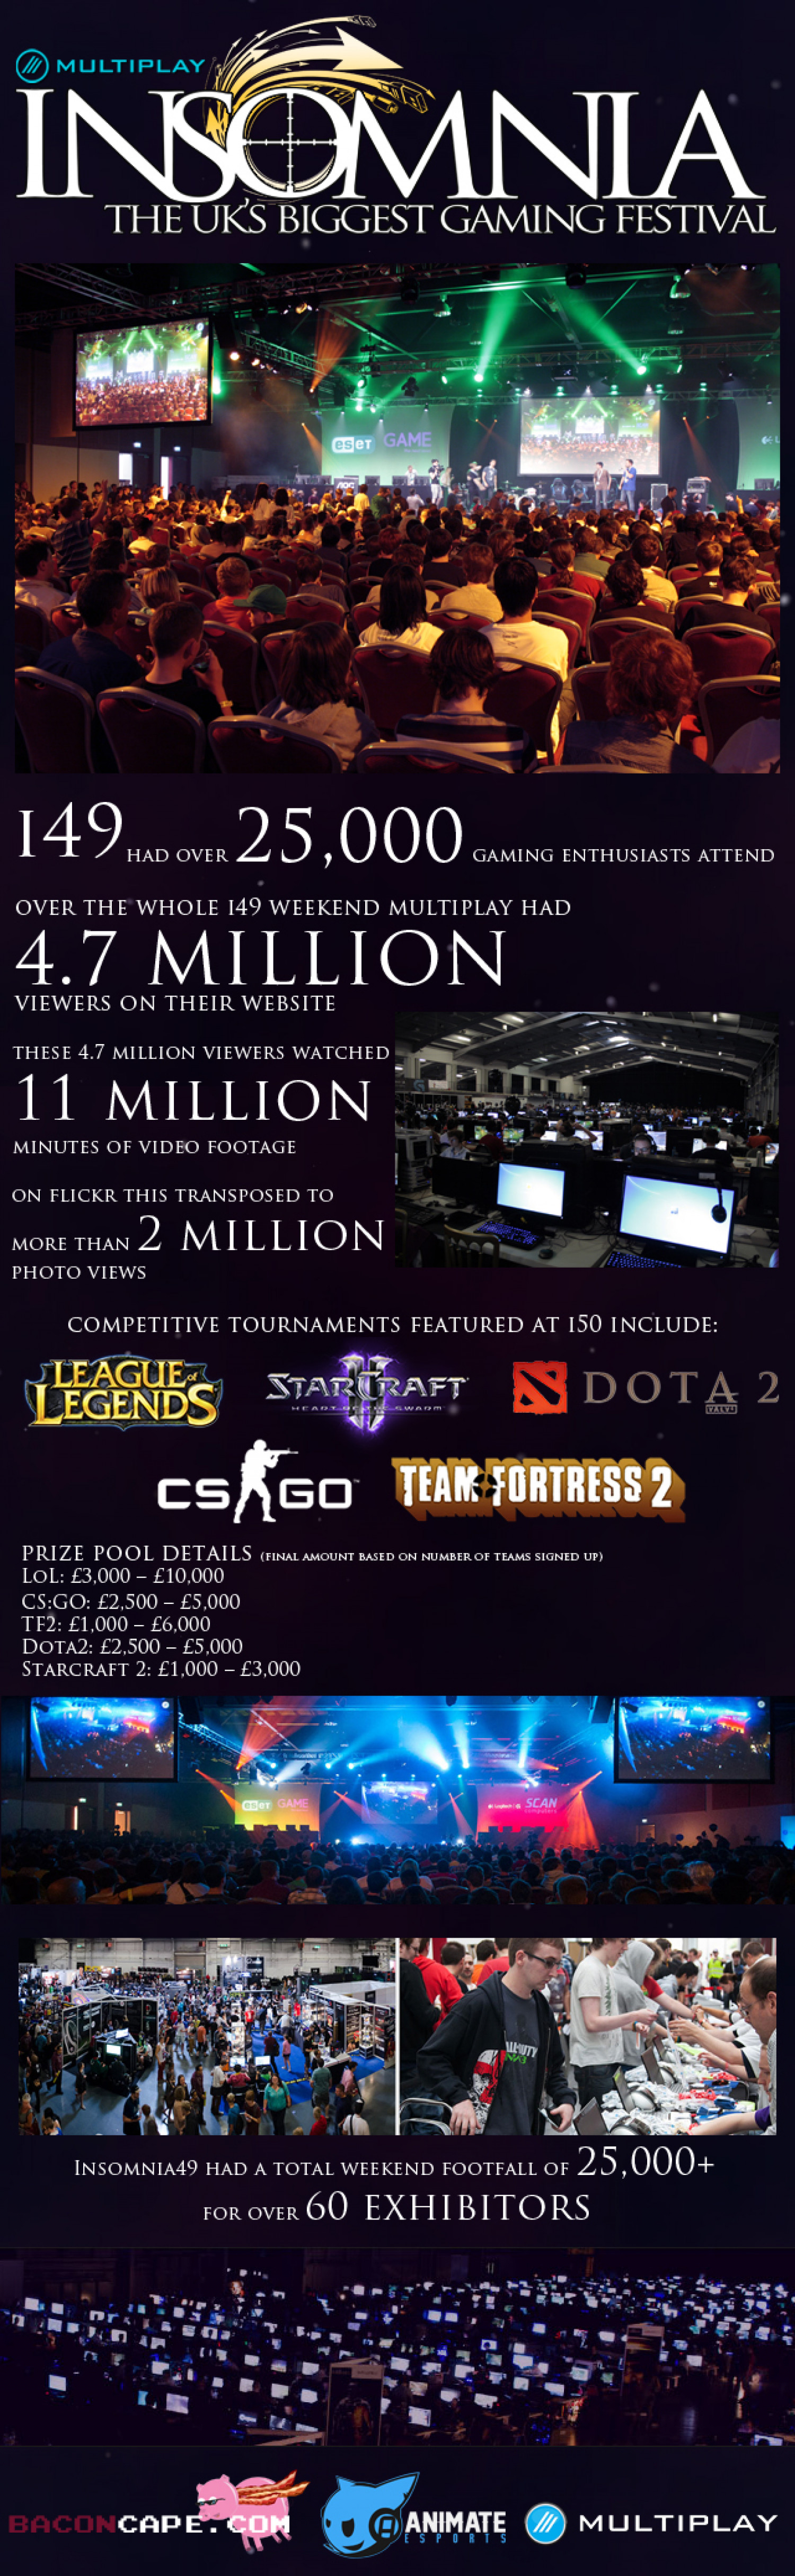 The Golden LANniversary Insomnia50 - The Biggest UK Gaming LAN Infographic